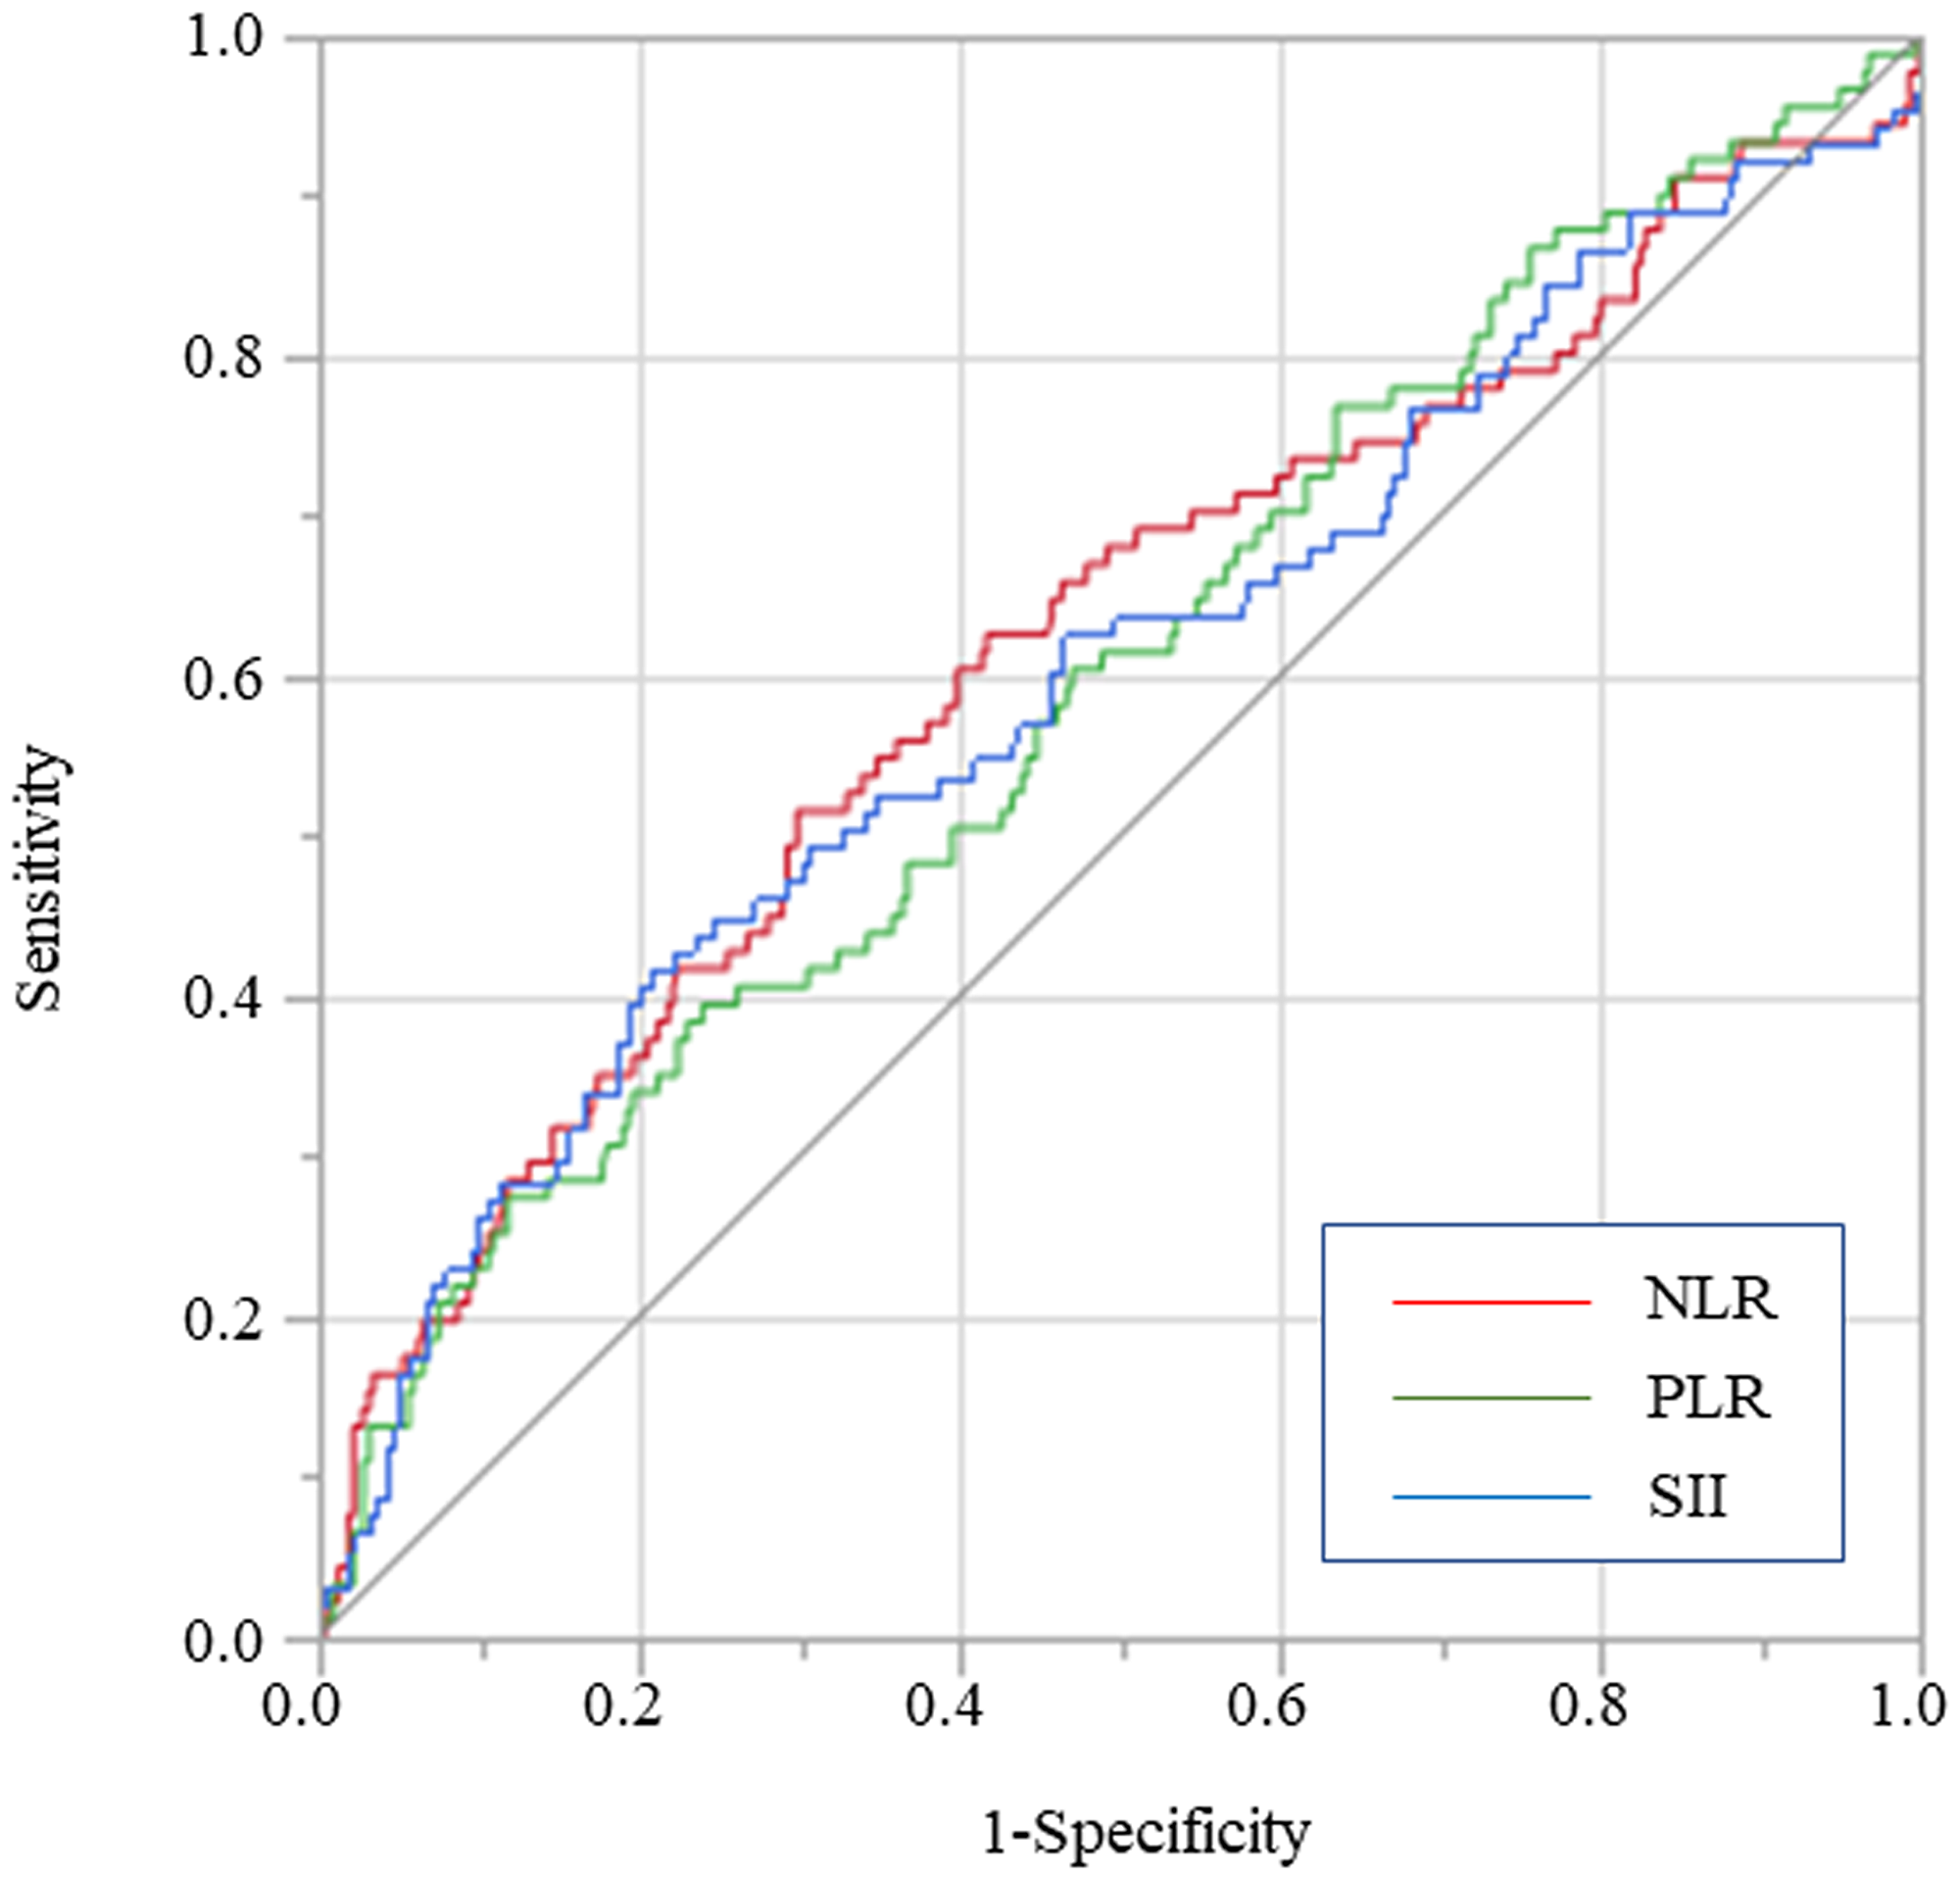 Predictive abilities of SII, NLR, and PLR for OS examined using ROC curve analysis in overall gastric cancer patients.